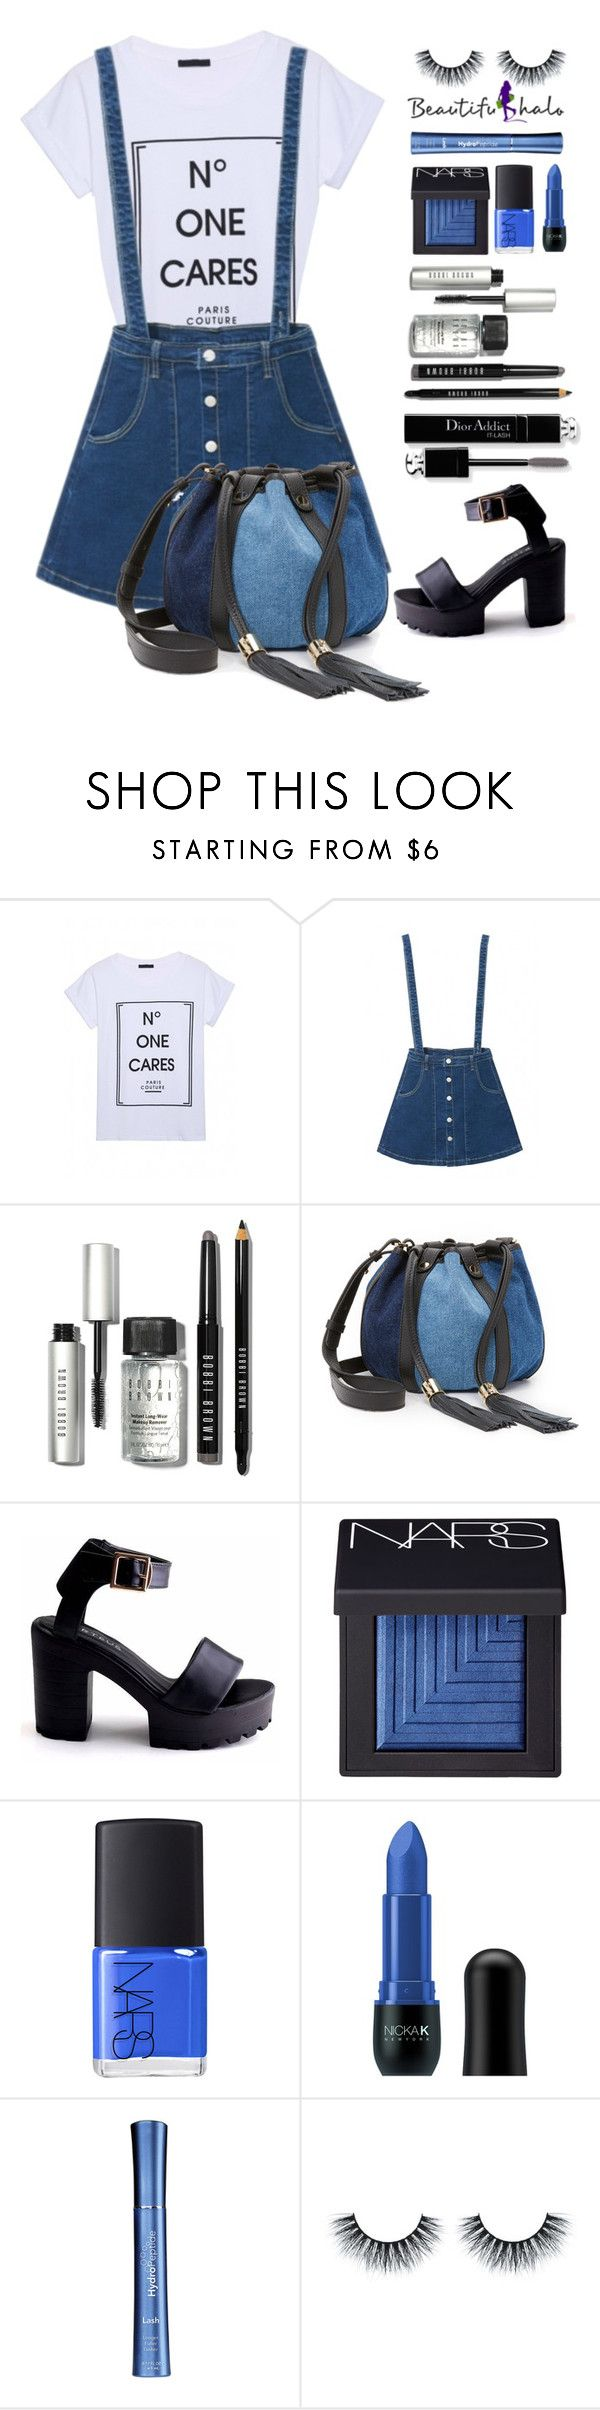 """beautifulhalo.com 20"" by meyli-meyli ❤ liked on Polyvore featuring Bobbi Brown Cosmetics, See by Chloé, Christian Dior, NARS Cosmetics, Nicka K, HydroPeptide, women's clothing, women, female and woman"